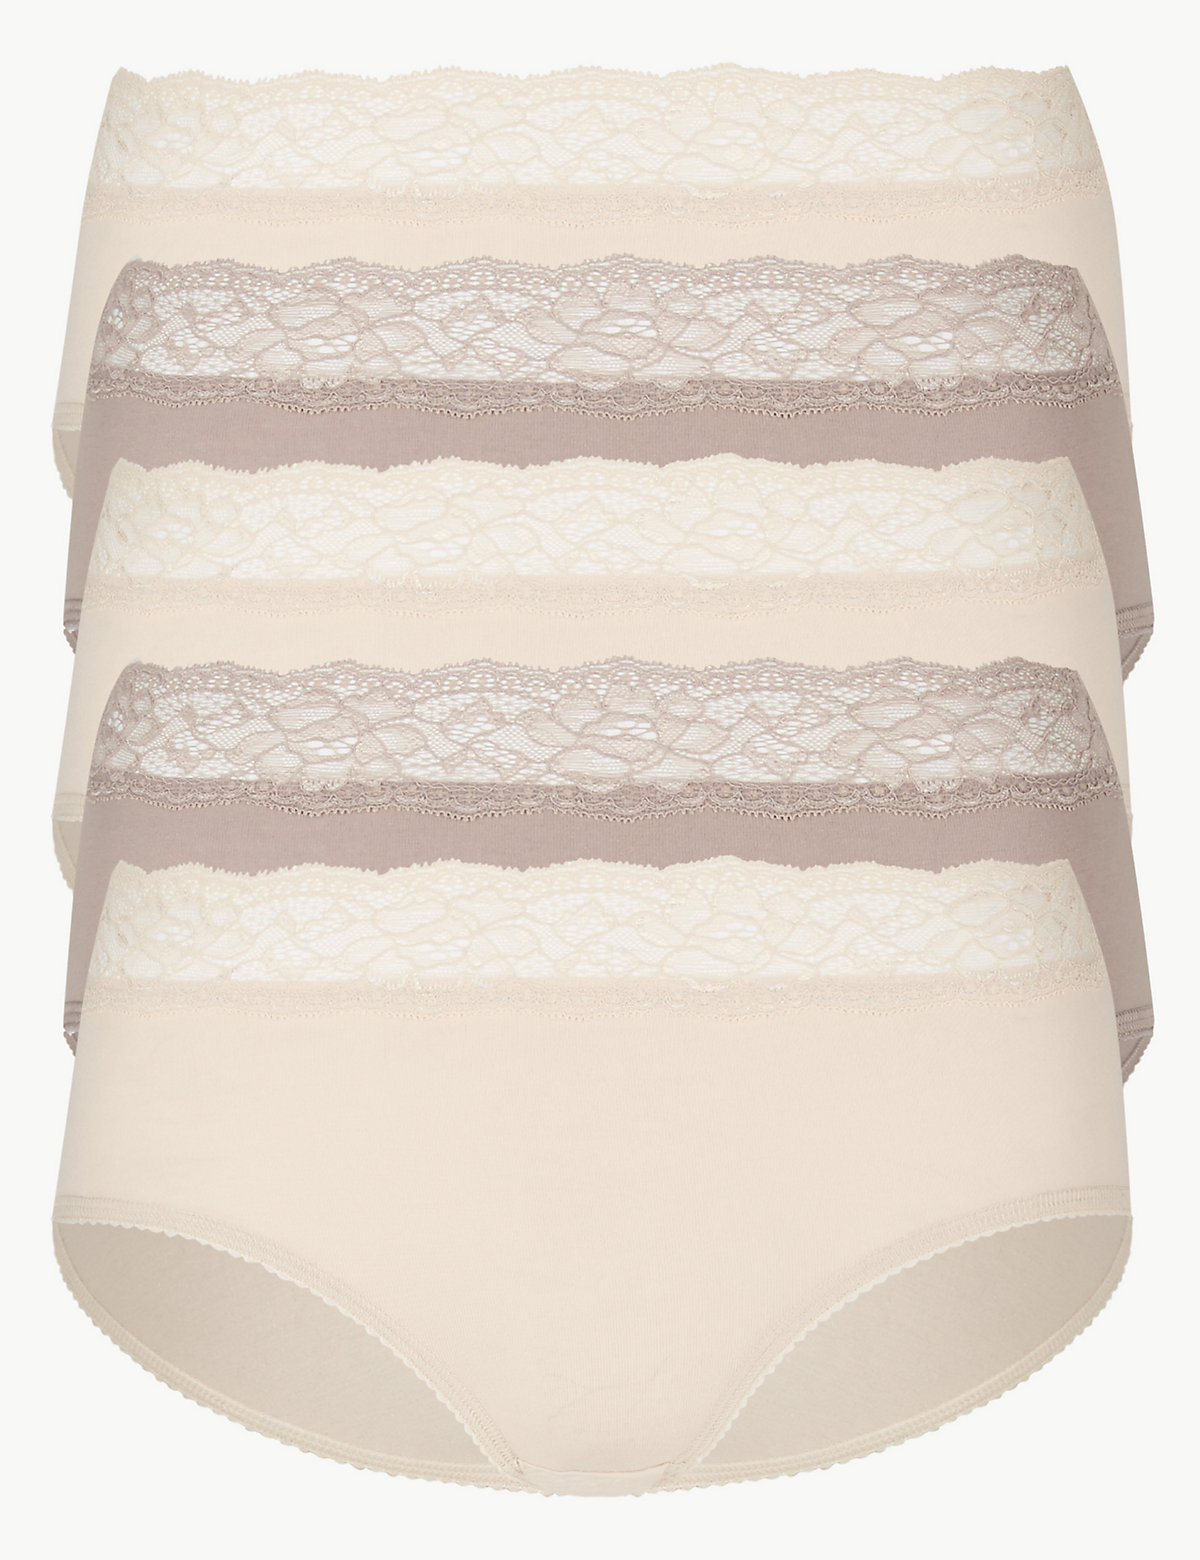 M&S Collection 5 Pack Lace High Waisted Midi Knickers